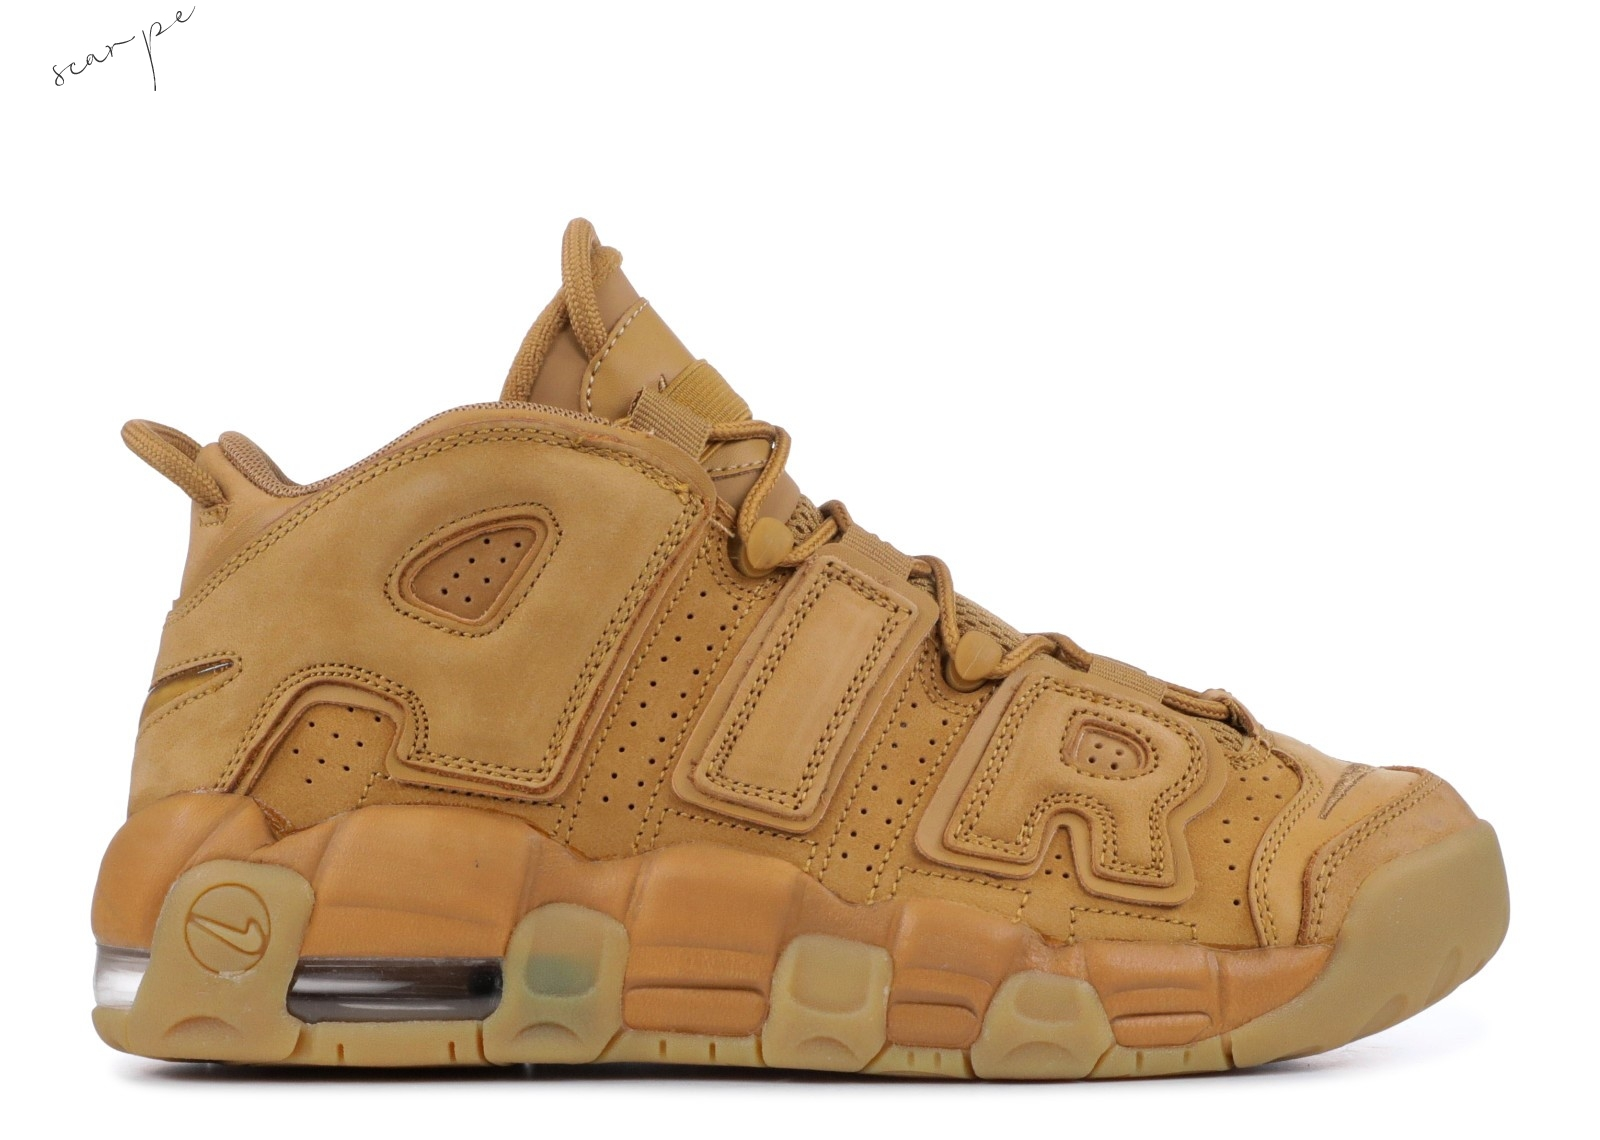 Vendite Nike Air More Uptempo Se (Gs) Marrone (922845-200) Scarpe Online